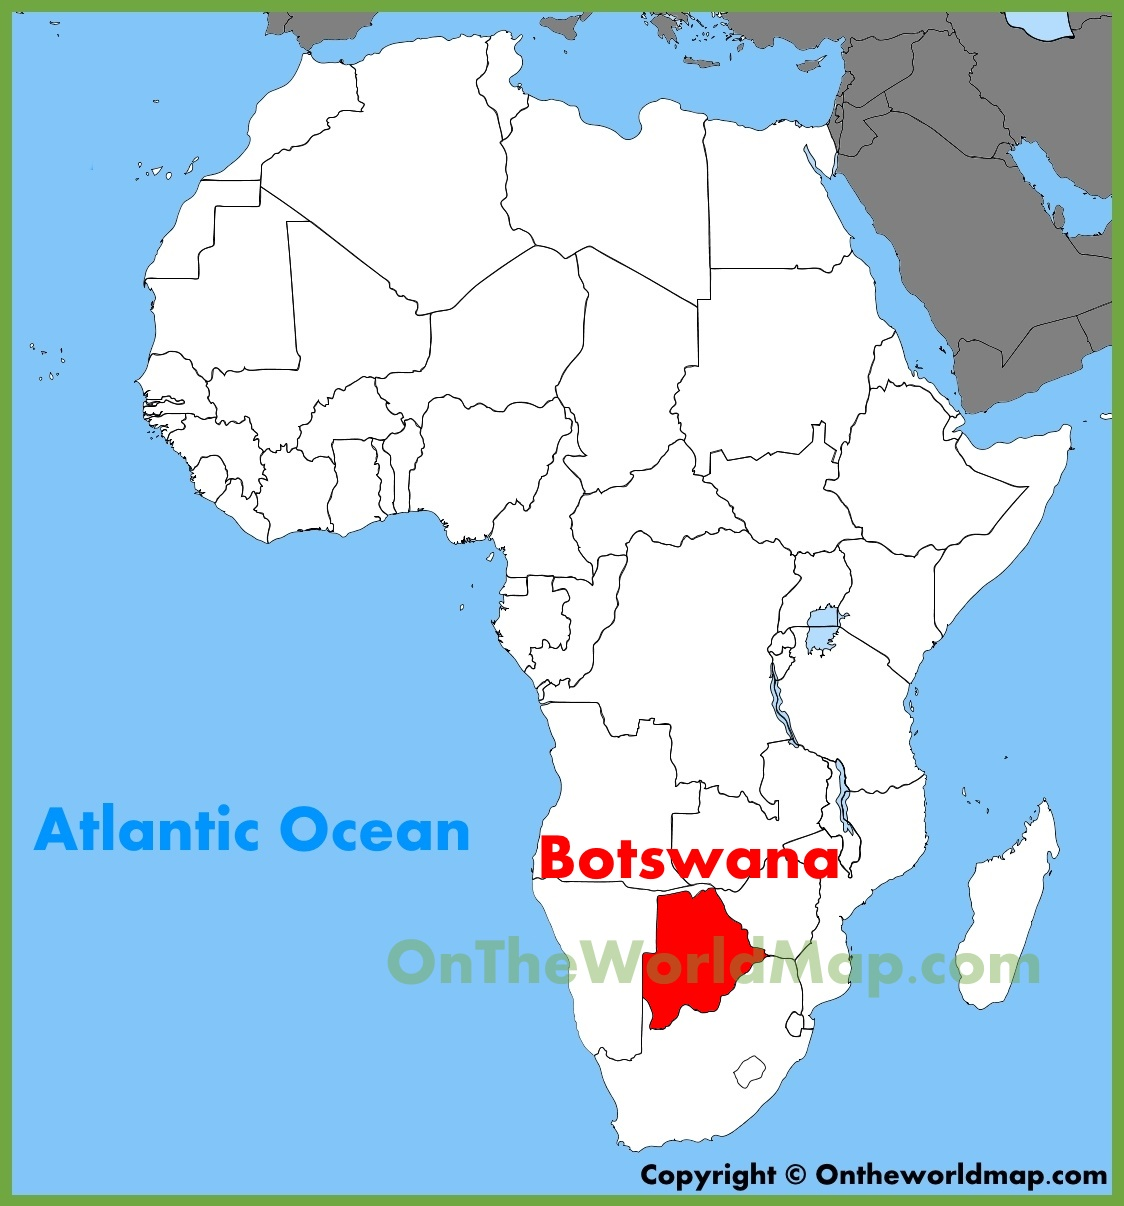 Botswana location on the Africa map